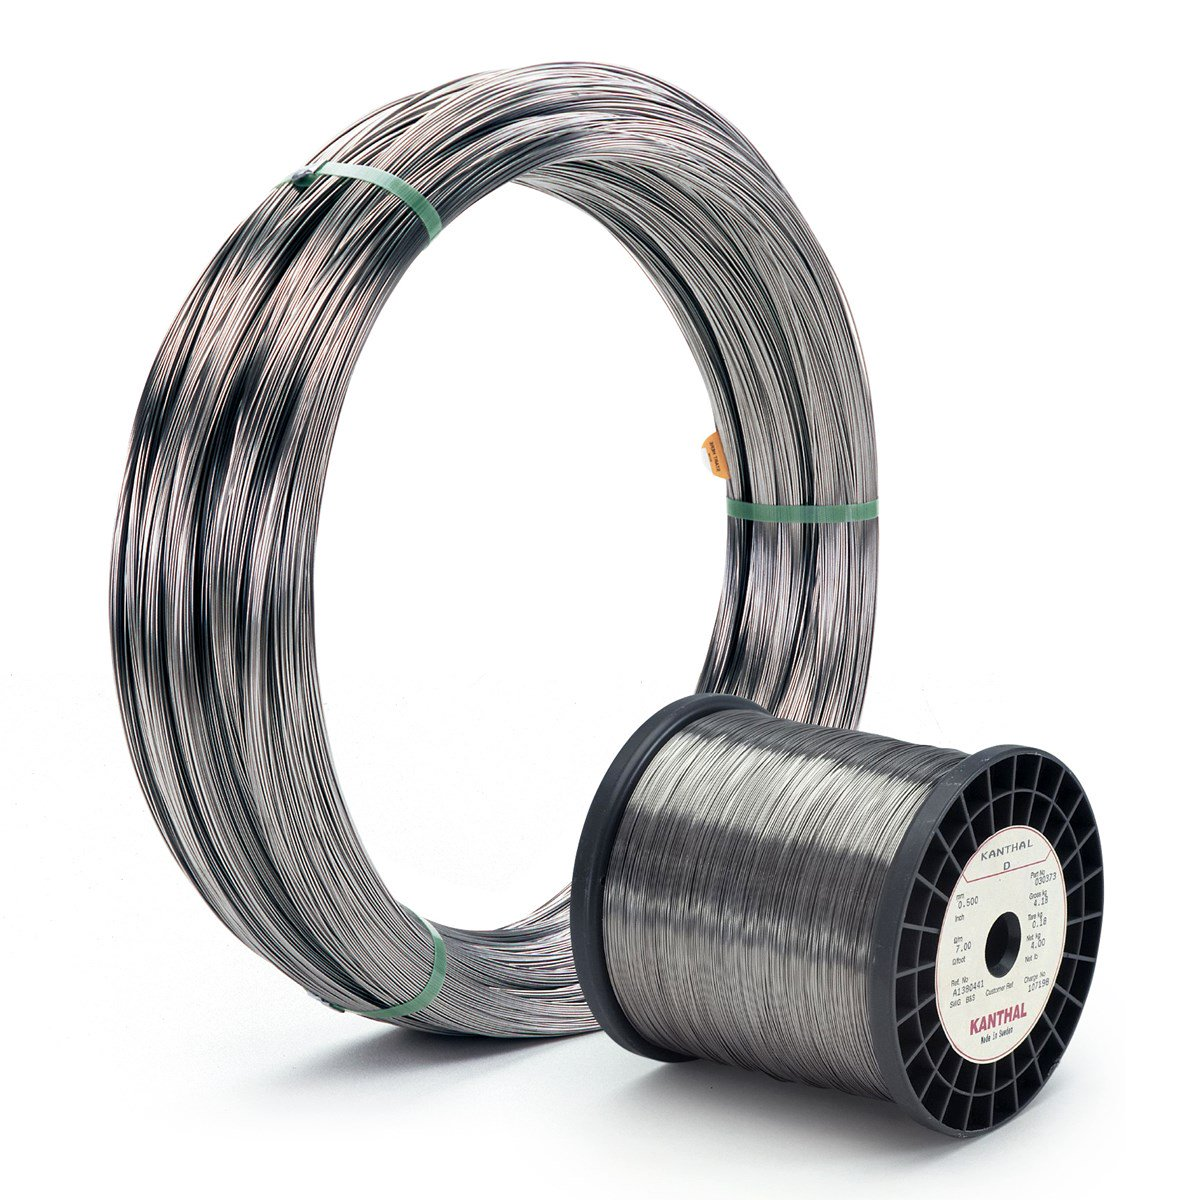 Global Resistance Heating Wire Market